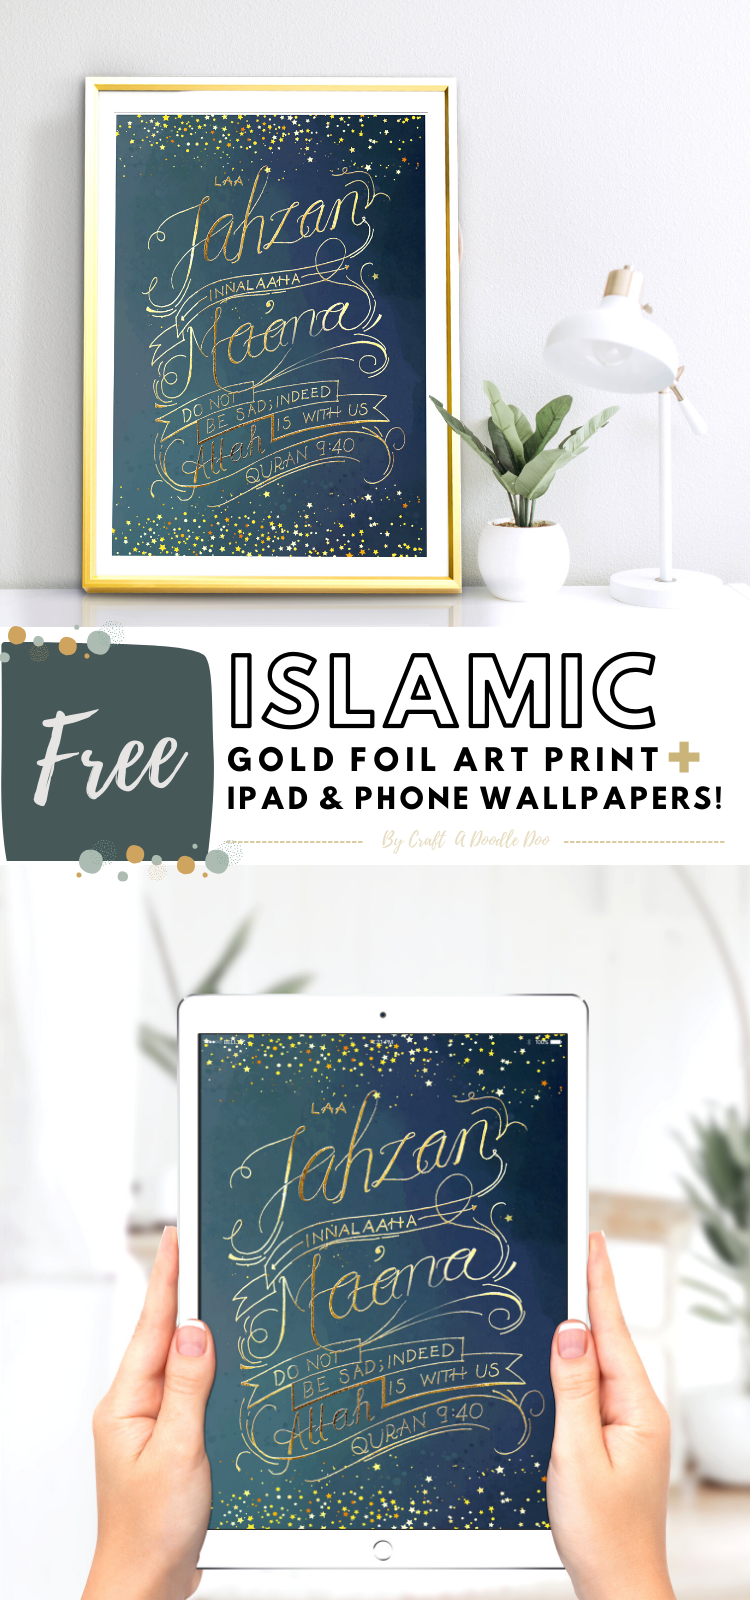 Free Islamic Art Print and Phone + Ipad Wallpapers #islamic #Illustrations #wallart #islam #muslim #decor #homedecor #ramadan #decor #eid #design #painting #art #graphics #wallpapers #motivational